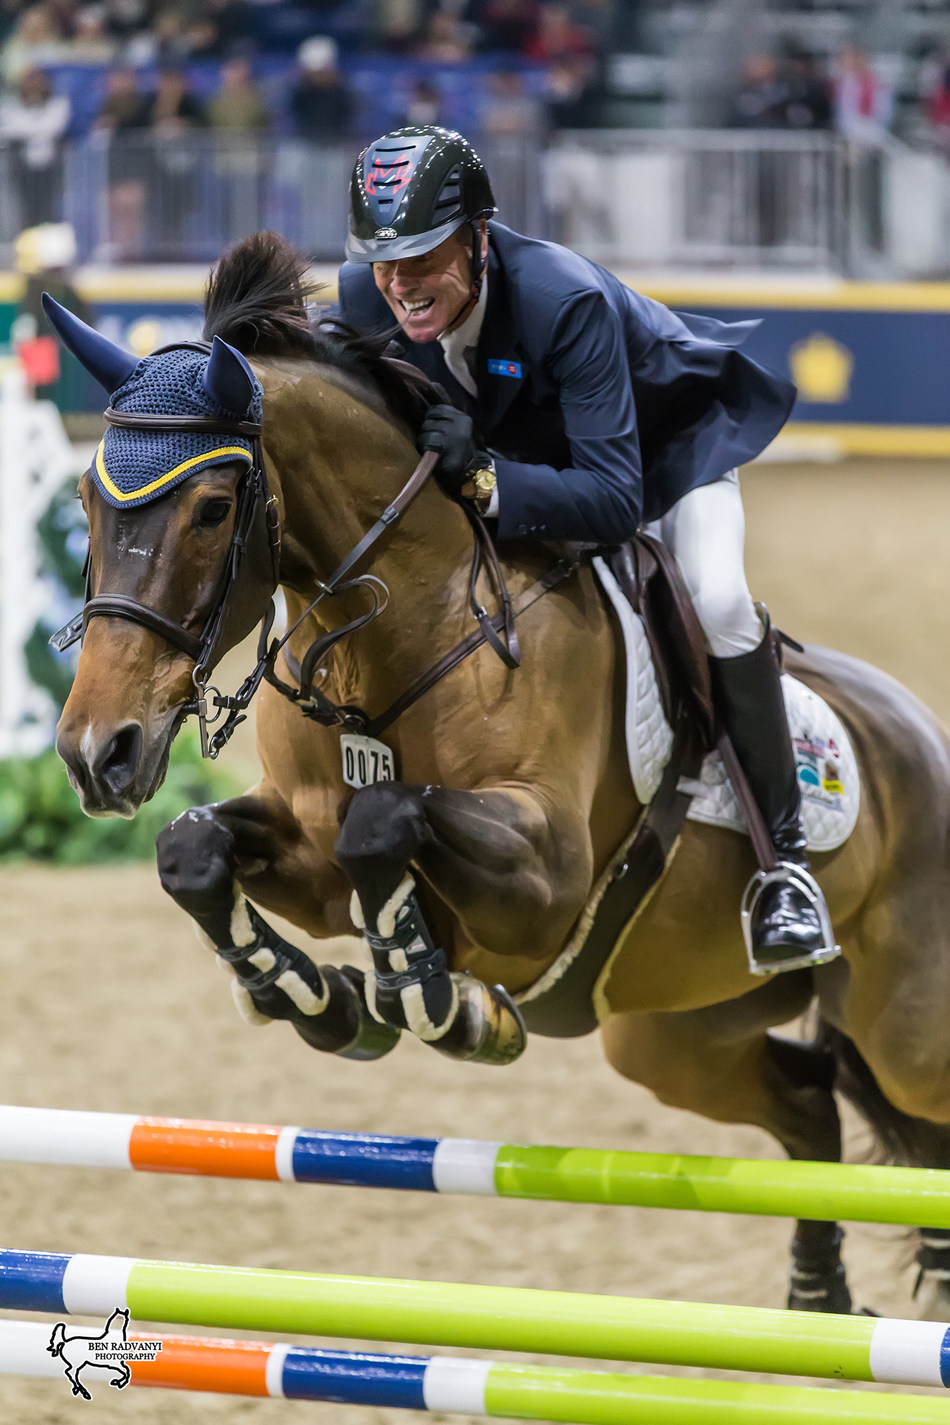 Ian Millar of Perth, ON, riding Dixson is aiming for a record 13th Canadian Show Jumping Championship title after winning the opening round of competition on Friday, November 3, at the Royal Horse Show in Toronto, ON. Photo by Ben Radvanyi Photography (CNW Group/Royal Agricultural Winter Fair)